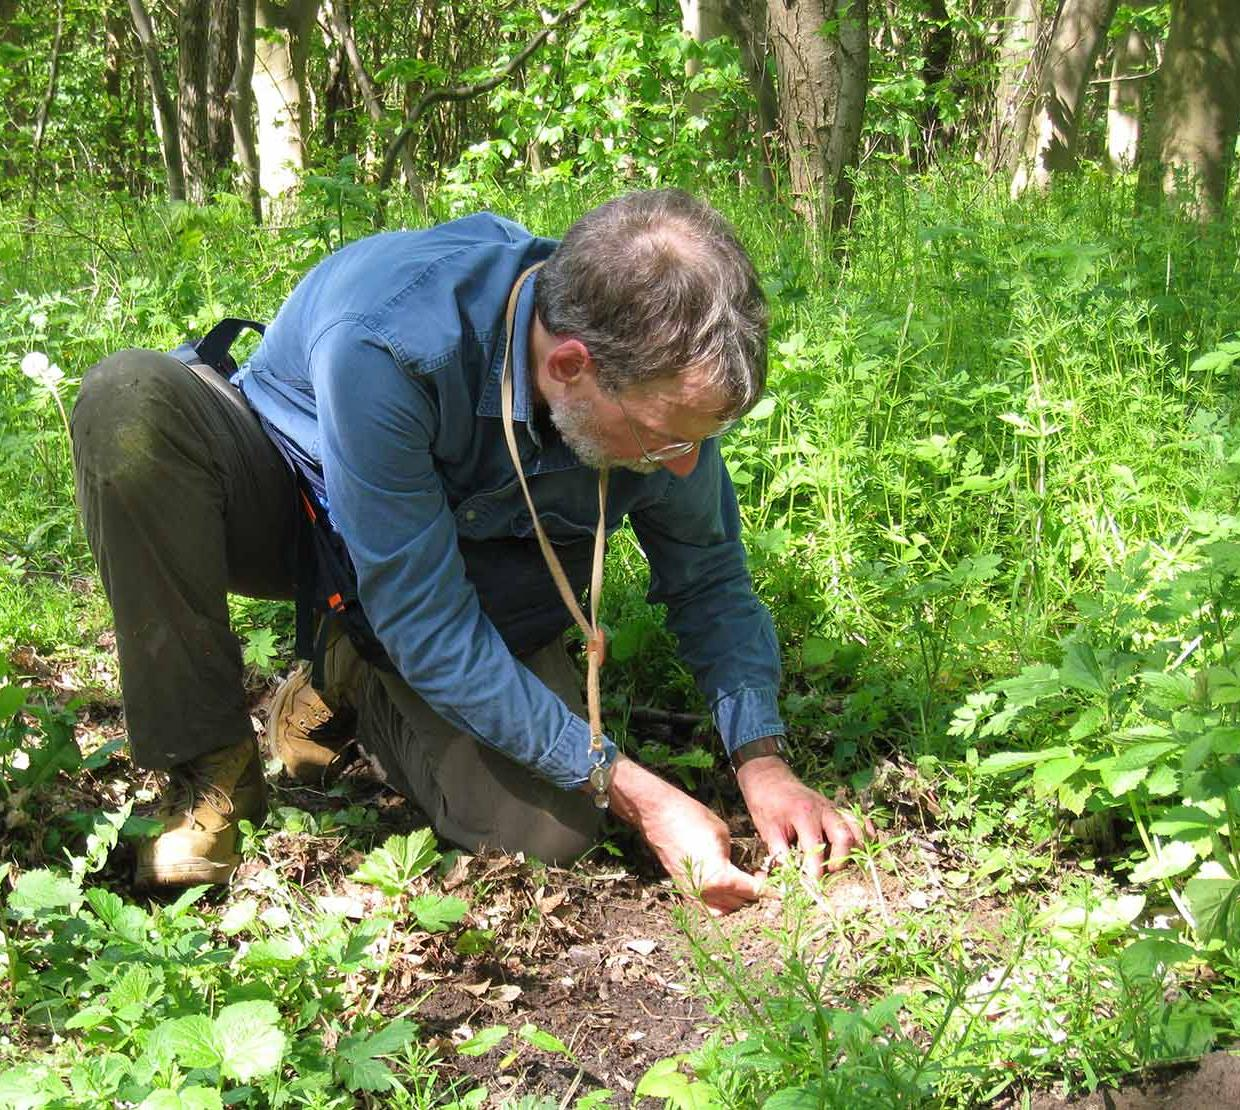 David Maddison diggings through soil in forest